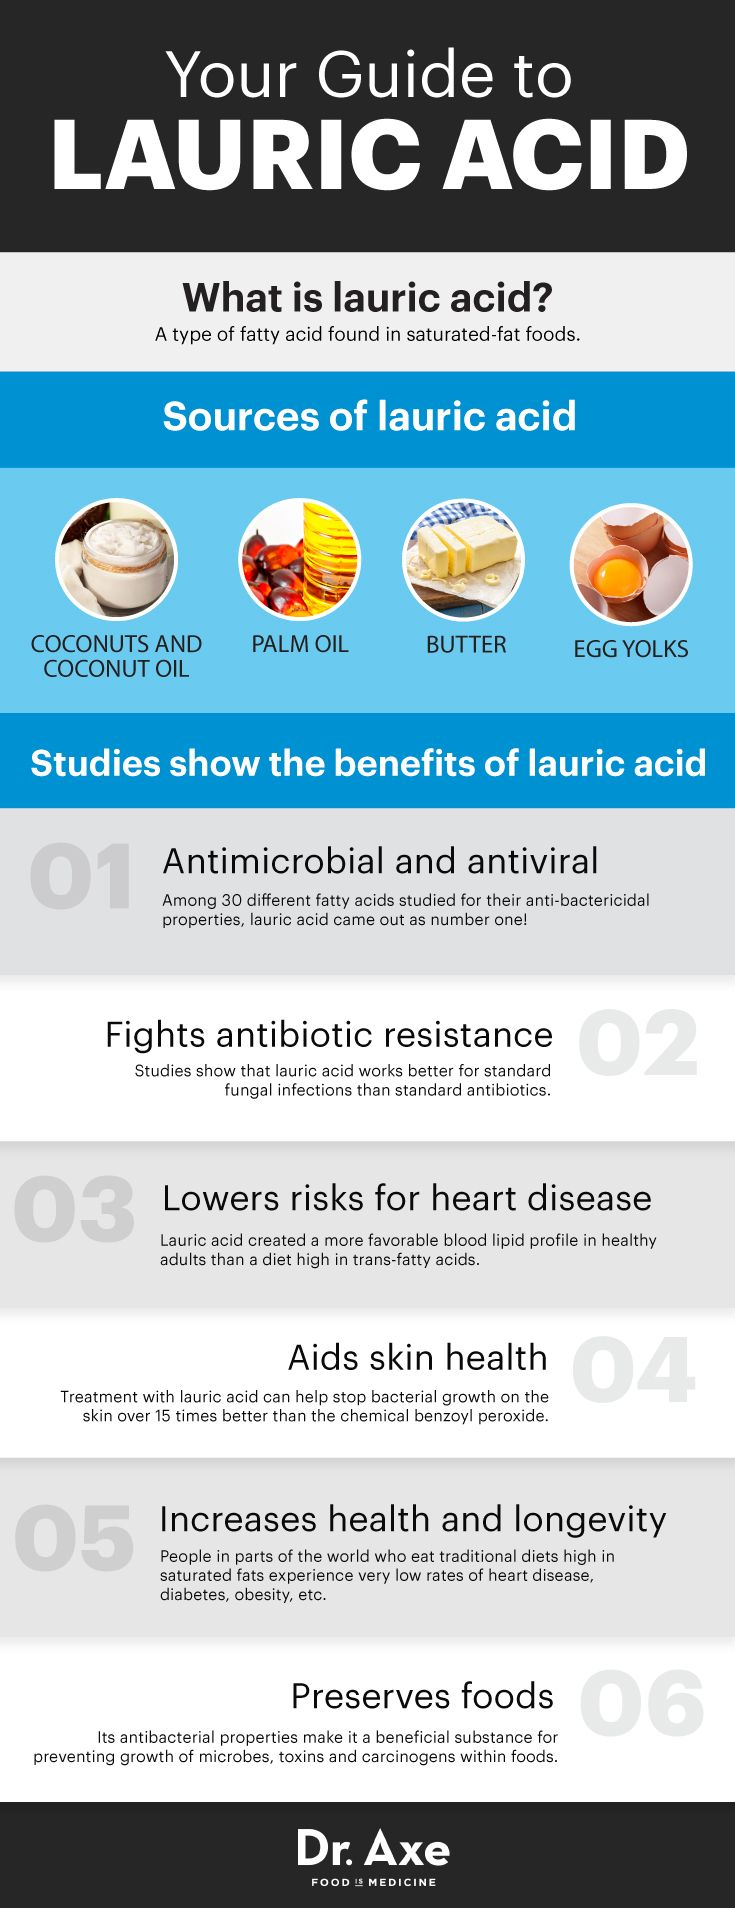 Lauric acid guide - Dr. Axe http://www.draxe.com #health #holistic #natural